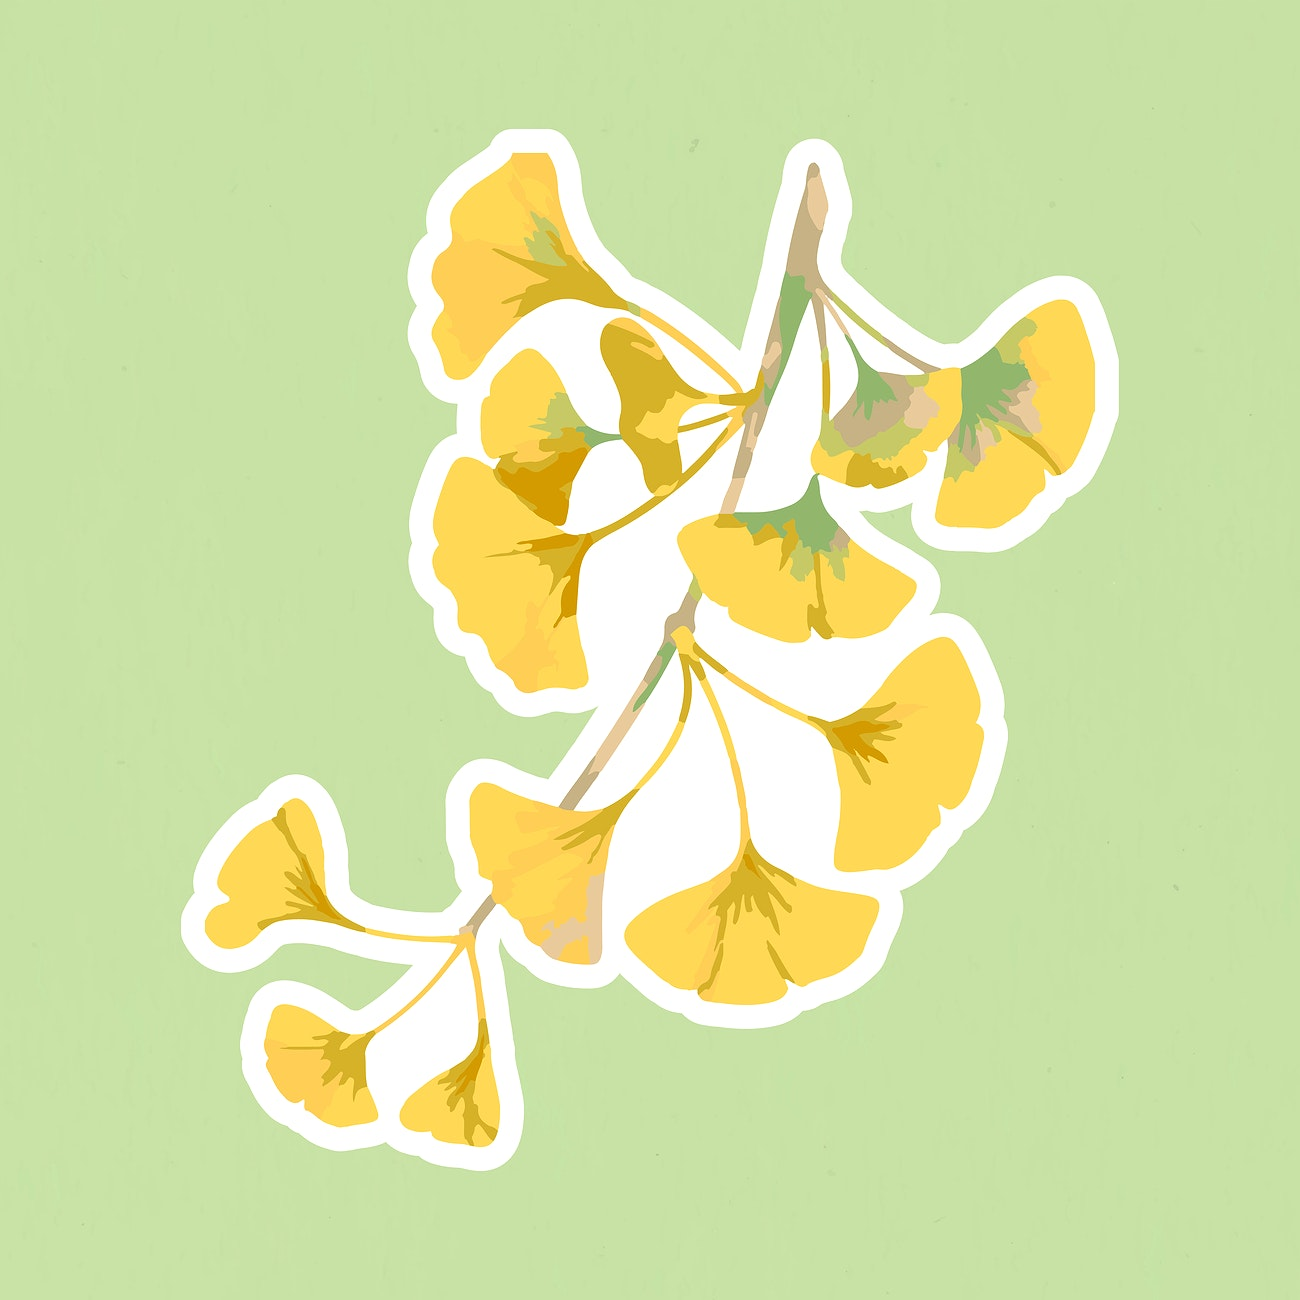 vectorized branch of yellow ginkgo sticker with a white